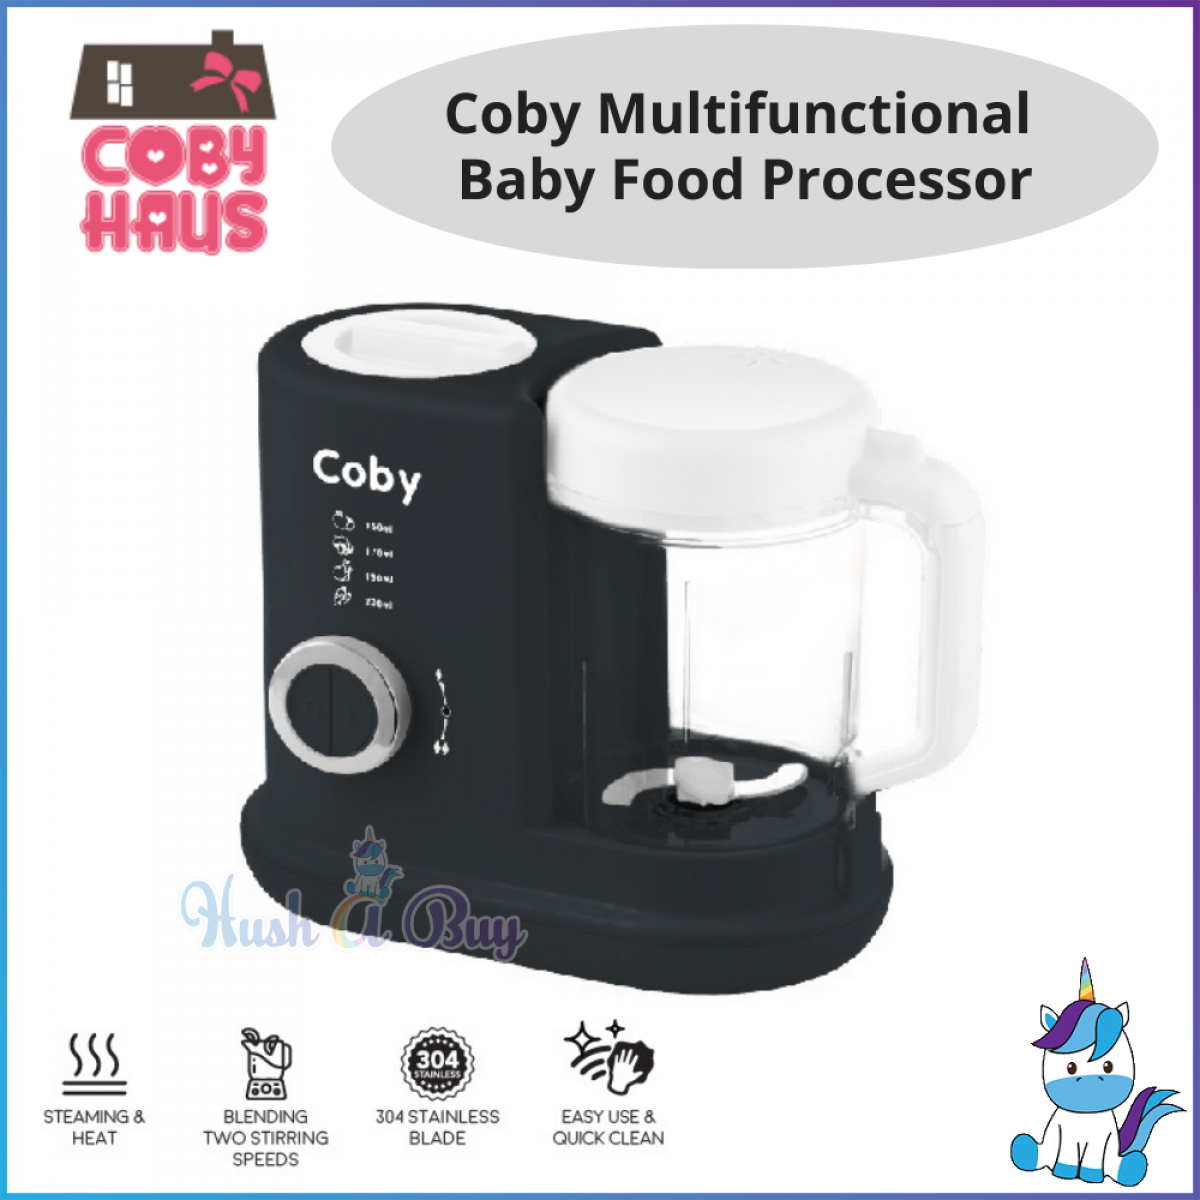 Coby Multifunctional Baby Food Processor and Steamer [1 YEAR WARRANTY]